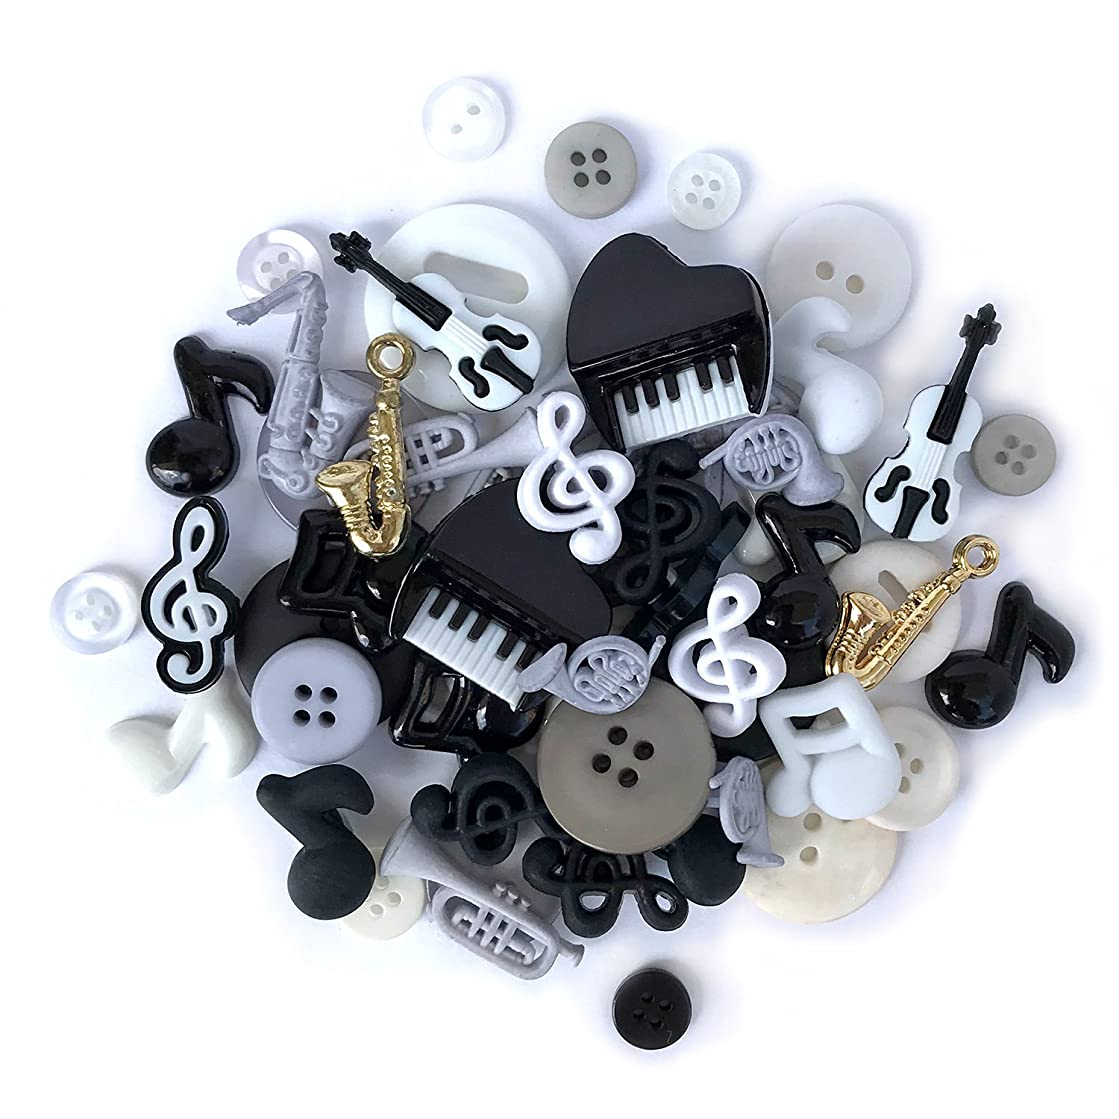 Buttons Galore 50 Piece Button Value Pack - Music